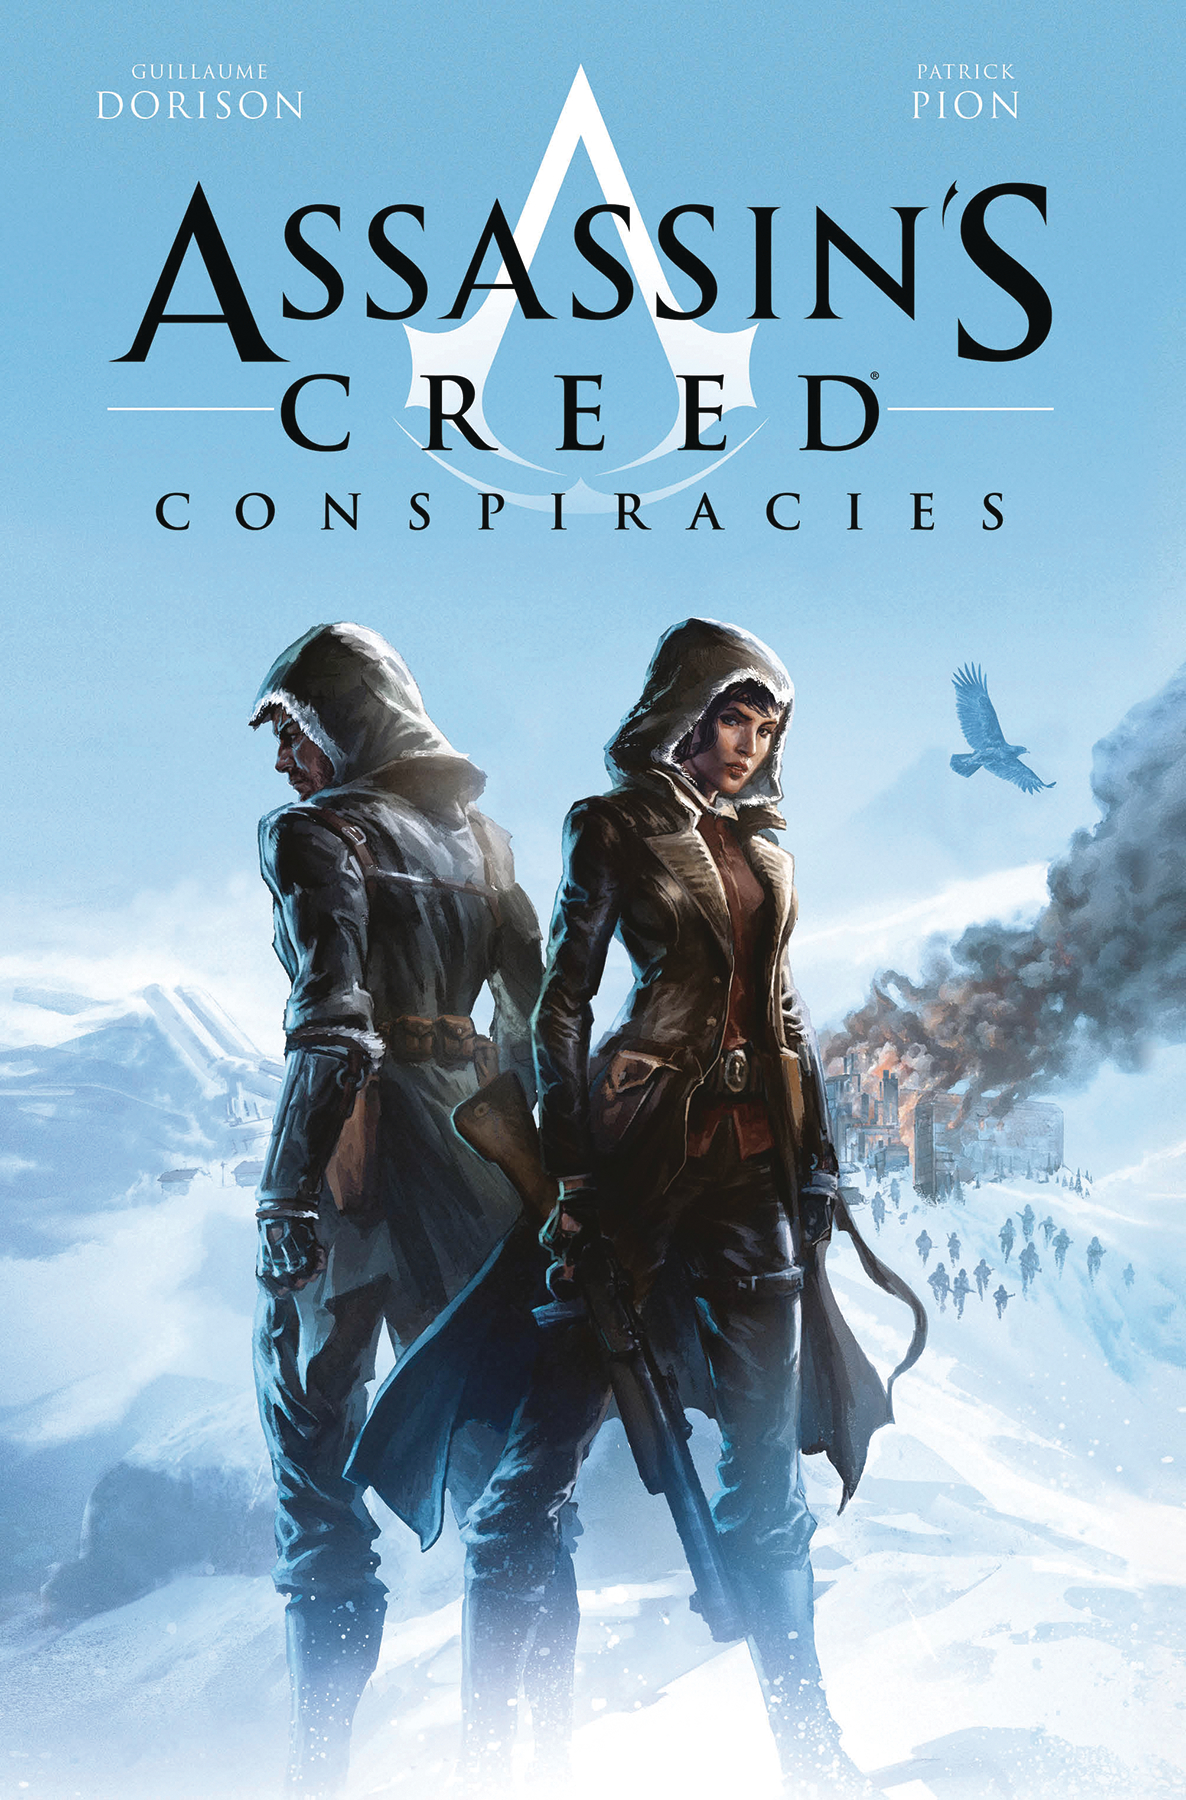 ASSASSINS CREED CONSPIRACIES #2